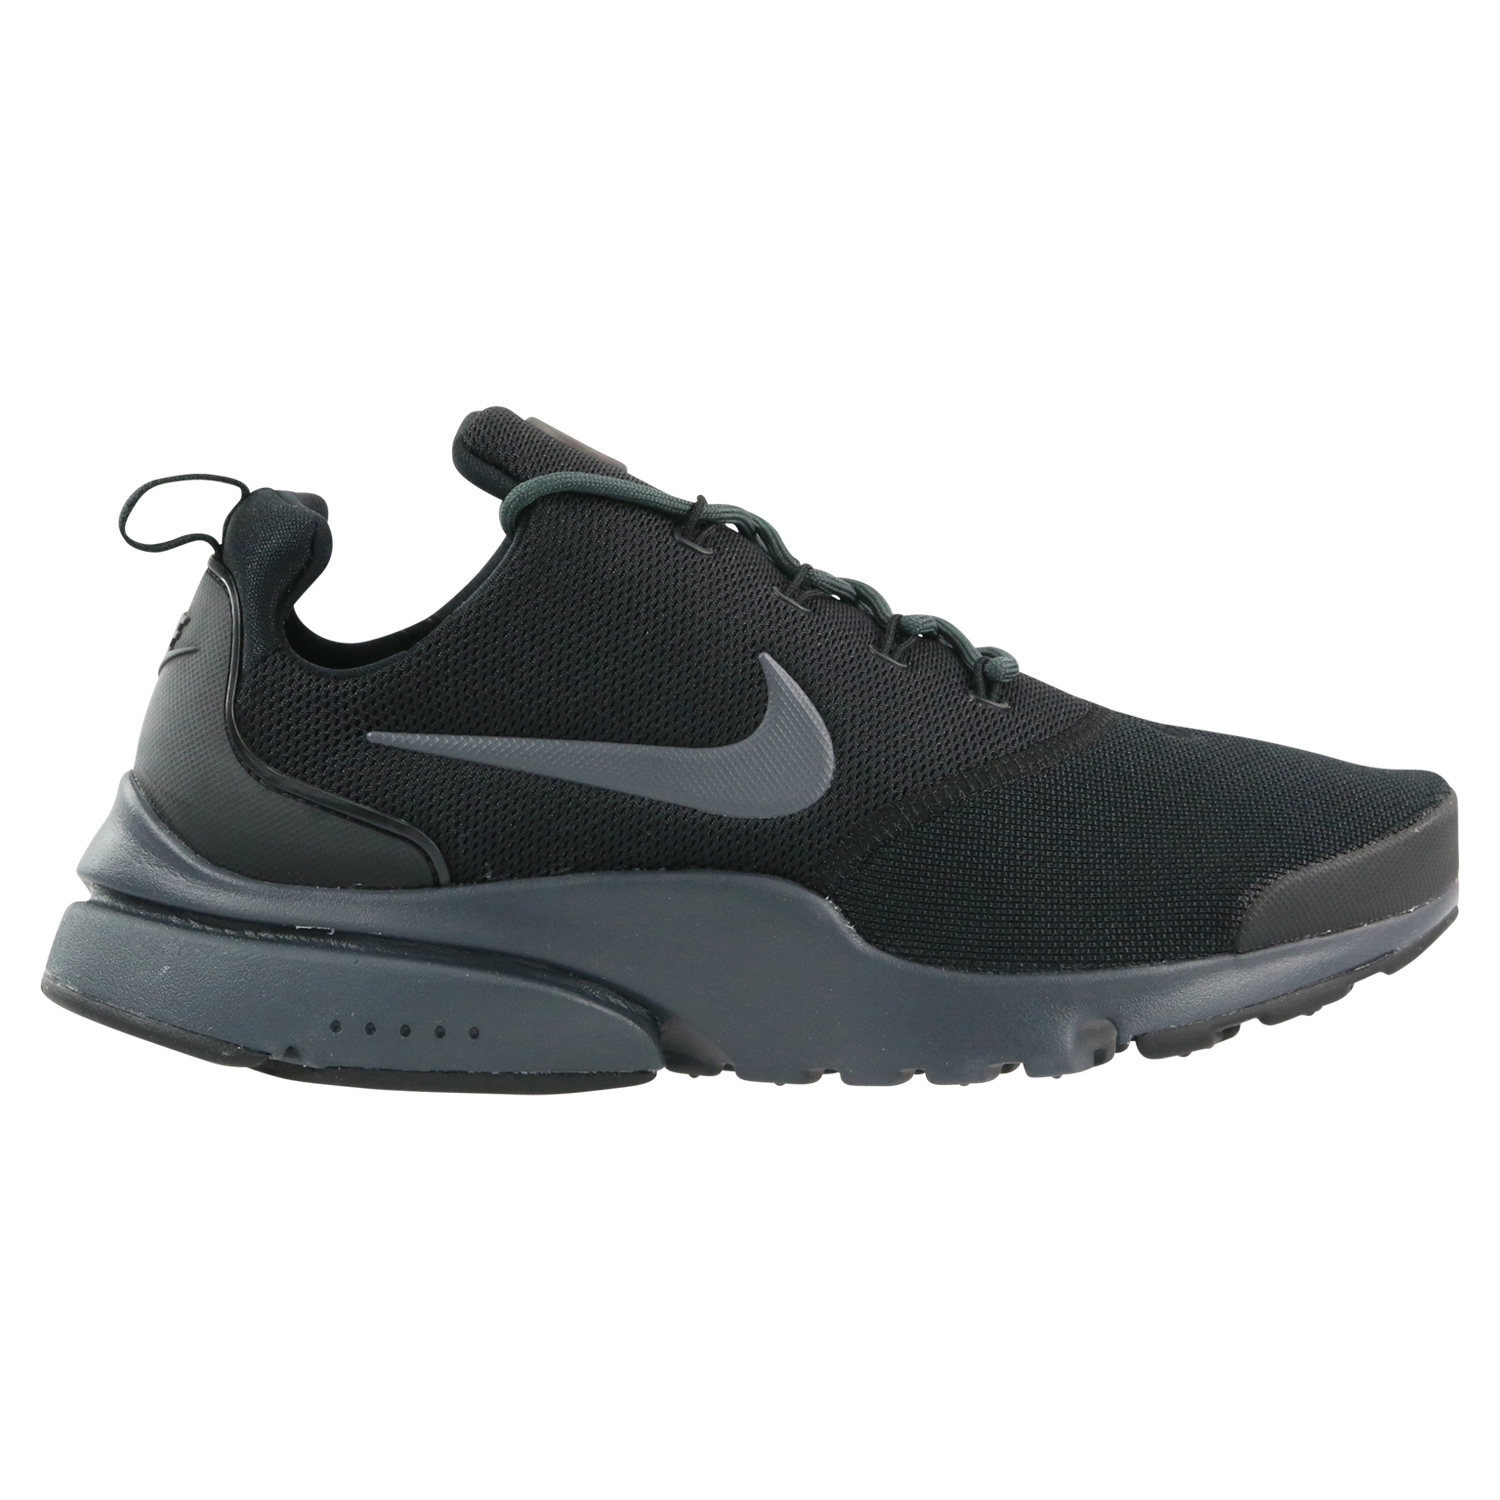 nike presto fly schuhe sneaker herren 908019 ebay. Black Bedroom Furniture Sets. Home Design Ideas